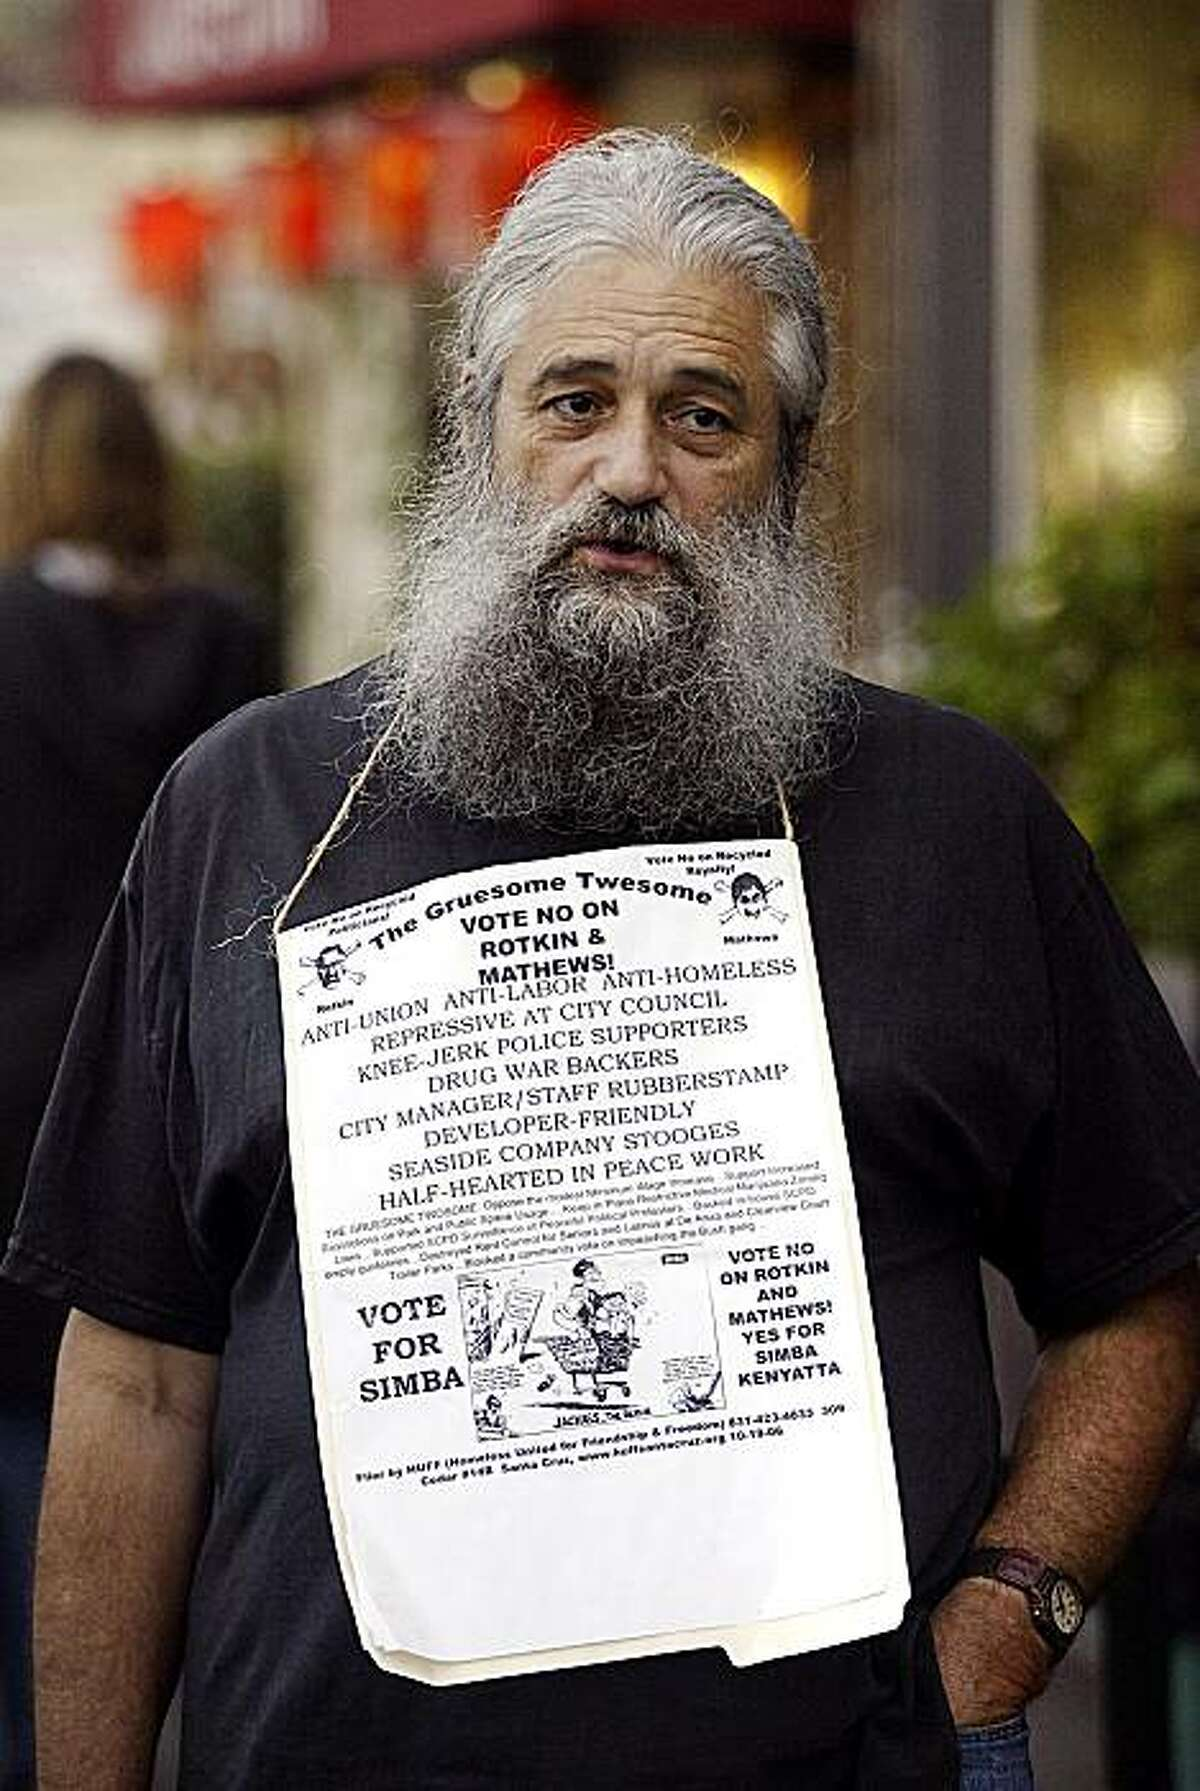 FILE - In this Nov. 6, 2009 file photo, homeless advocate Robert Norse is seen in Santa Cruz, Calif. A federal appeals court has ordered a trial judge to reconsider a lawsuit by Norse who was arrested for raising a Nazi salute during a city council meeting. Norse claims his free speech rights were violated with the 2002 arrest.